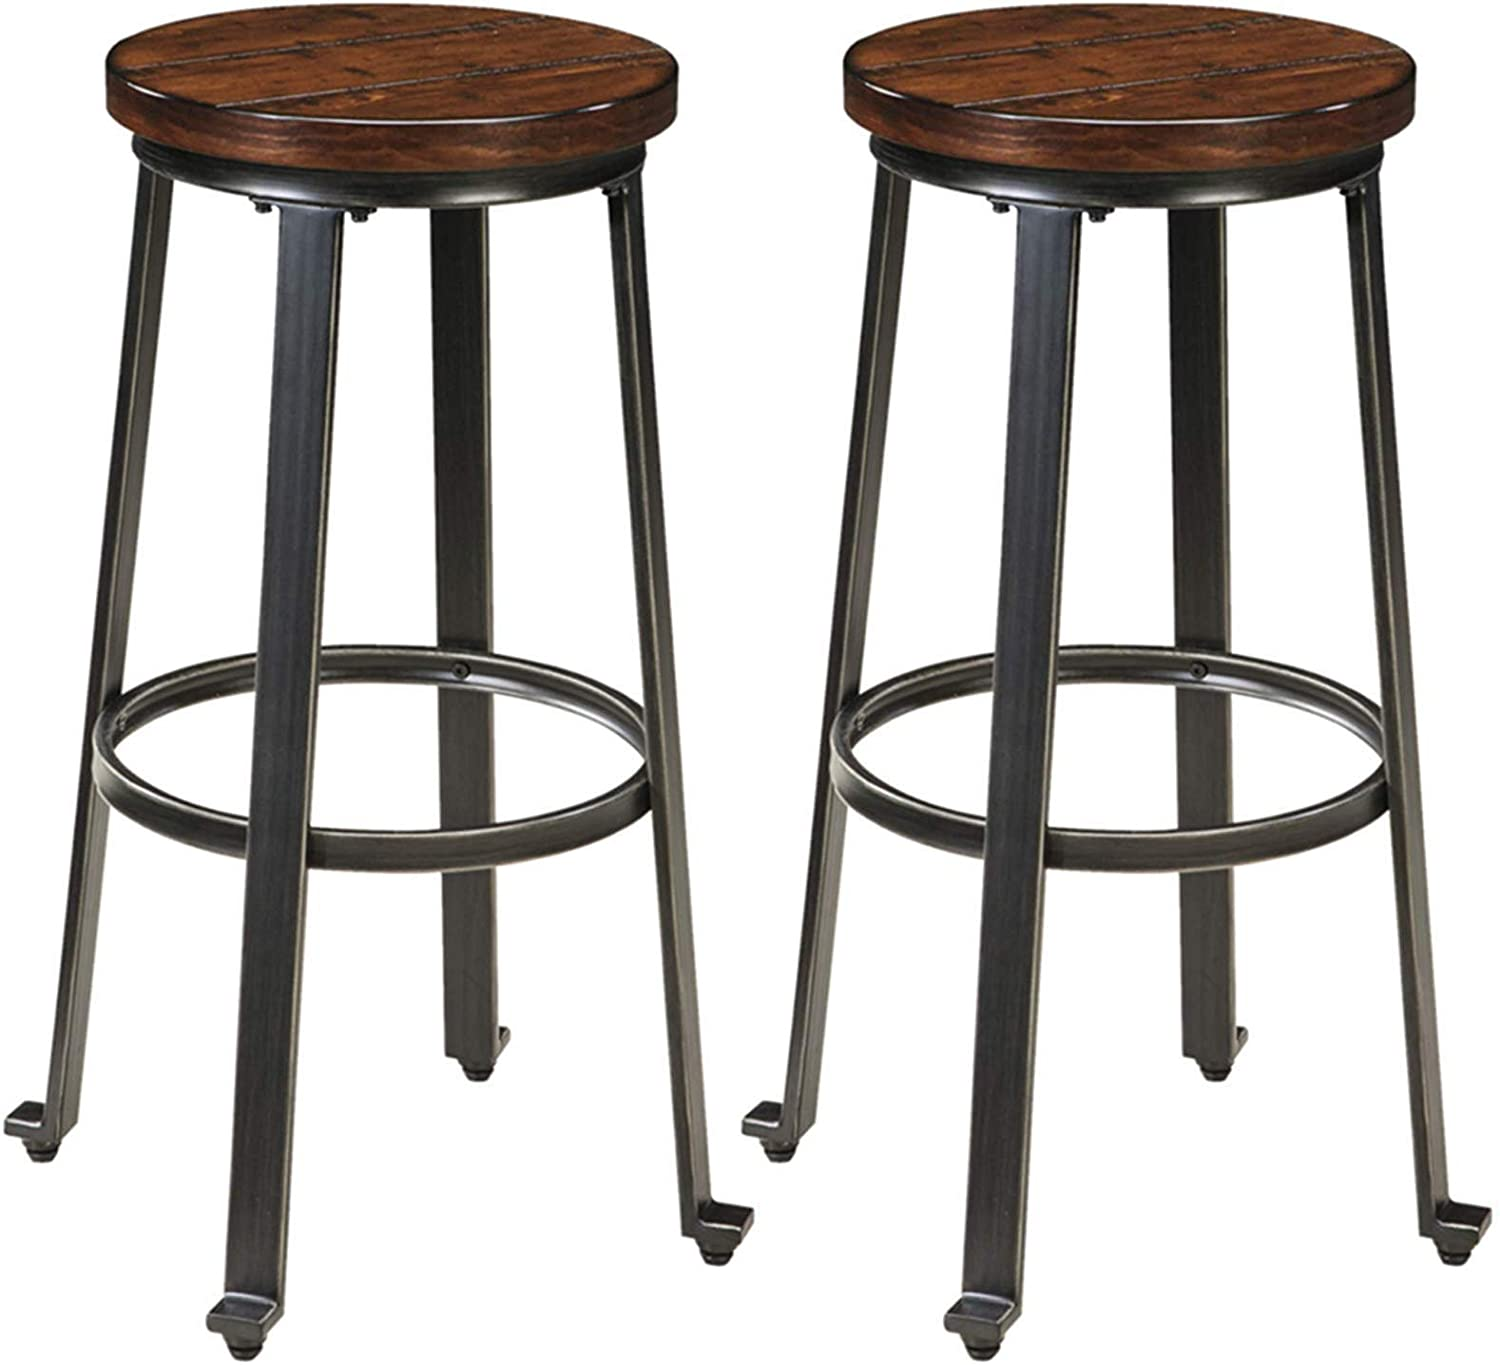 buy round backless bar stool online